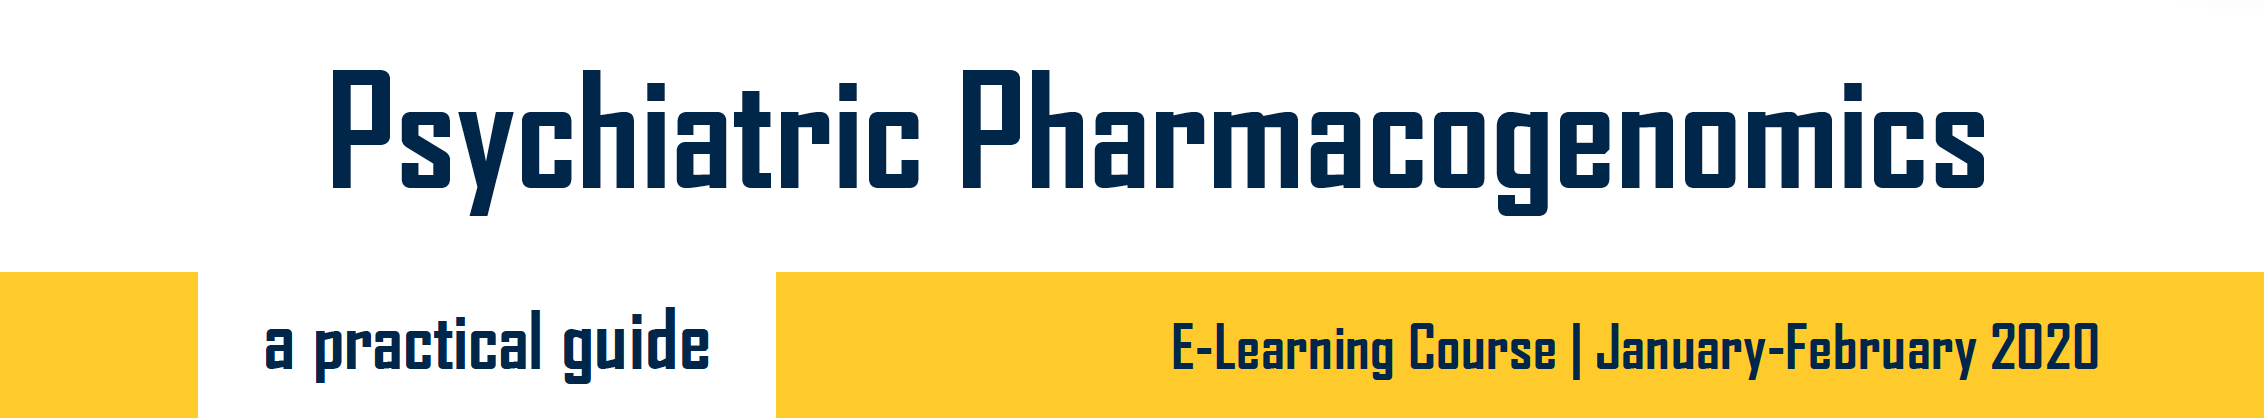 Psychiatric Pharmacogenomics: A Practical Guide to Gene-Drug Interactions and Tests (Wed, 01/29/20 - Wed, 02/12/20)